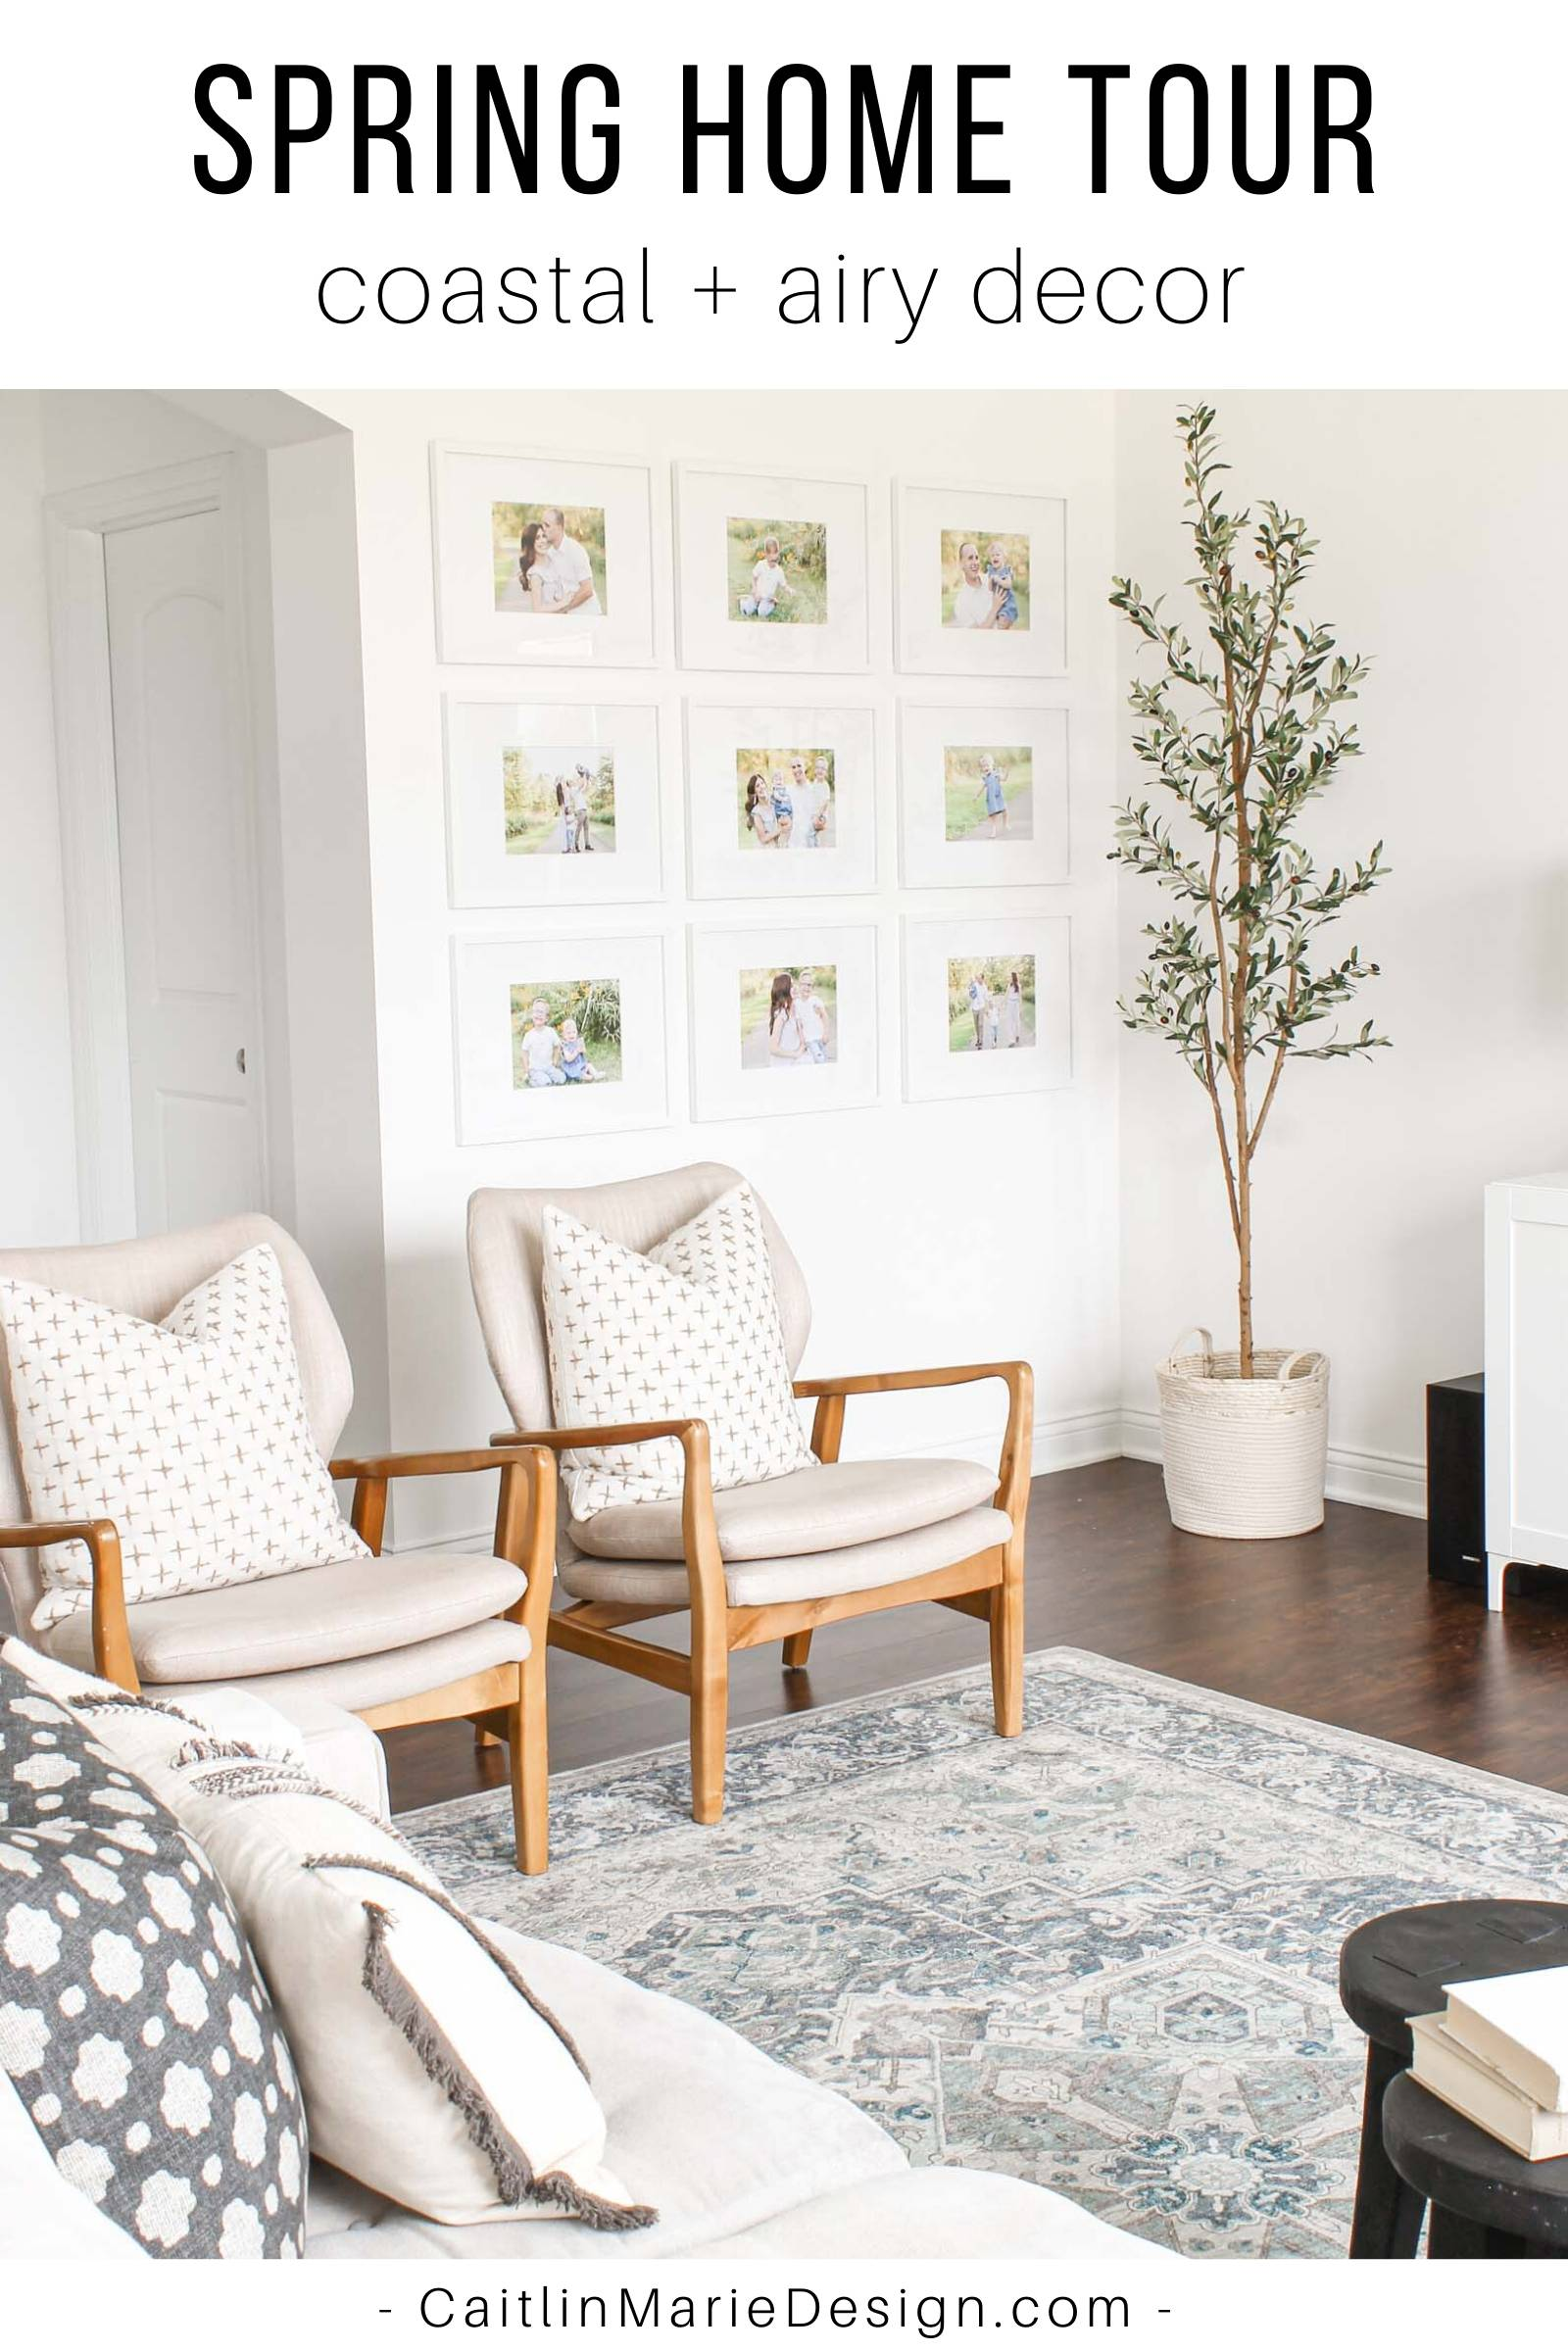 Airy Home Decor | Spring Home Tour | gallery wall, blue vintage rug, family photo wall, olive tree, wood accent chairs